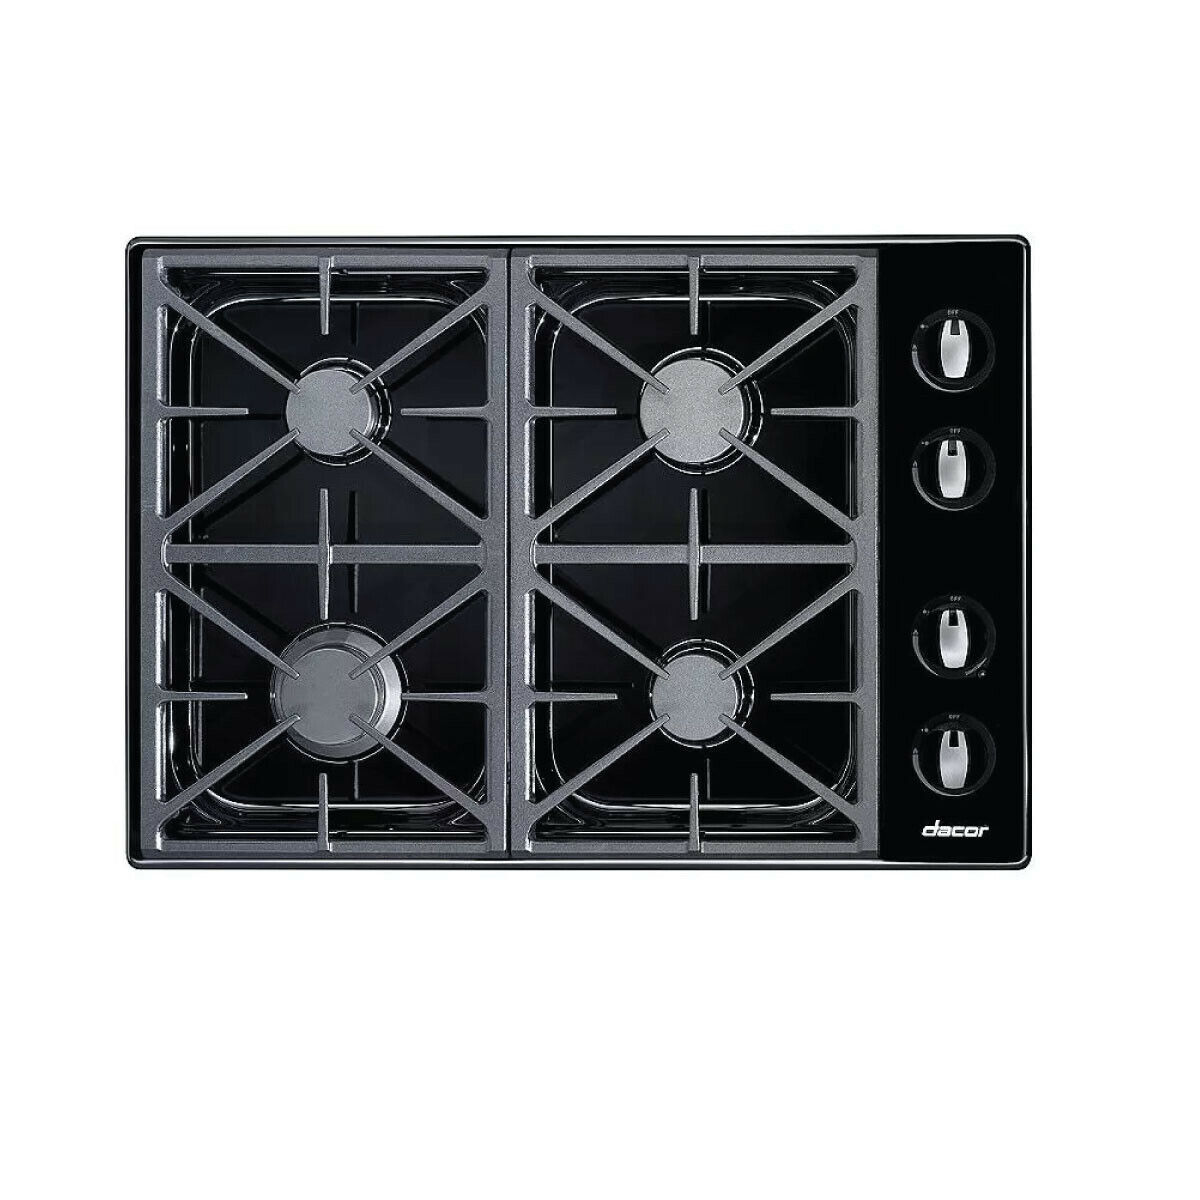 Dacor Renaissance RGC304BNGH 30 Inch Gas Cooktop with 4 Seal